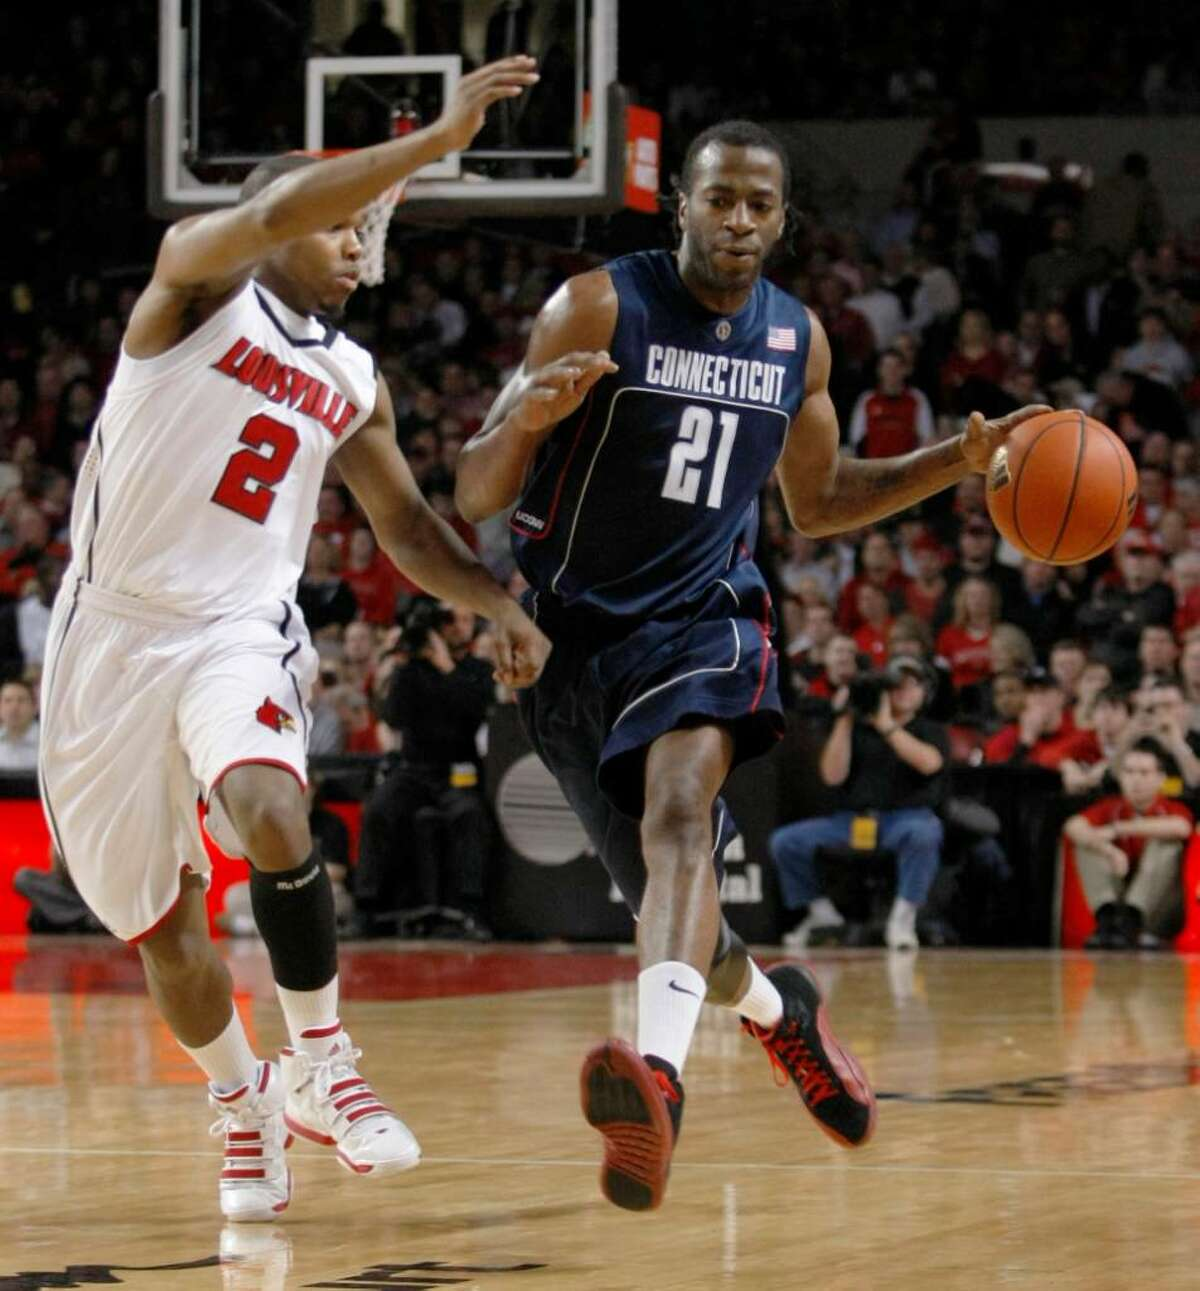 Connecticut's Stanley Robinson drives past Louisville's Preston Knowles during the first half of an NCAA college basketball game in Louisville, Ky., Monday, Feb. 1, 2010. (AP Photo/Ed Reinke)